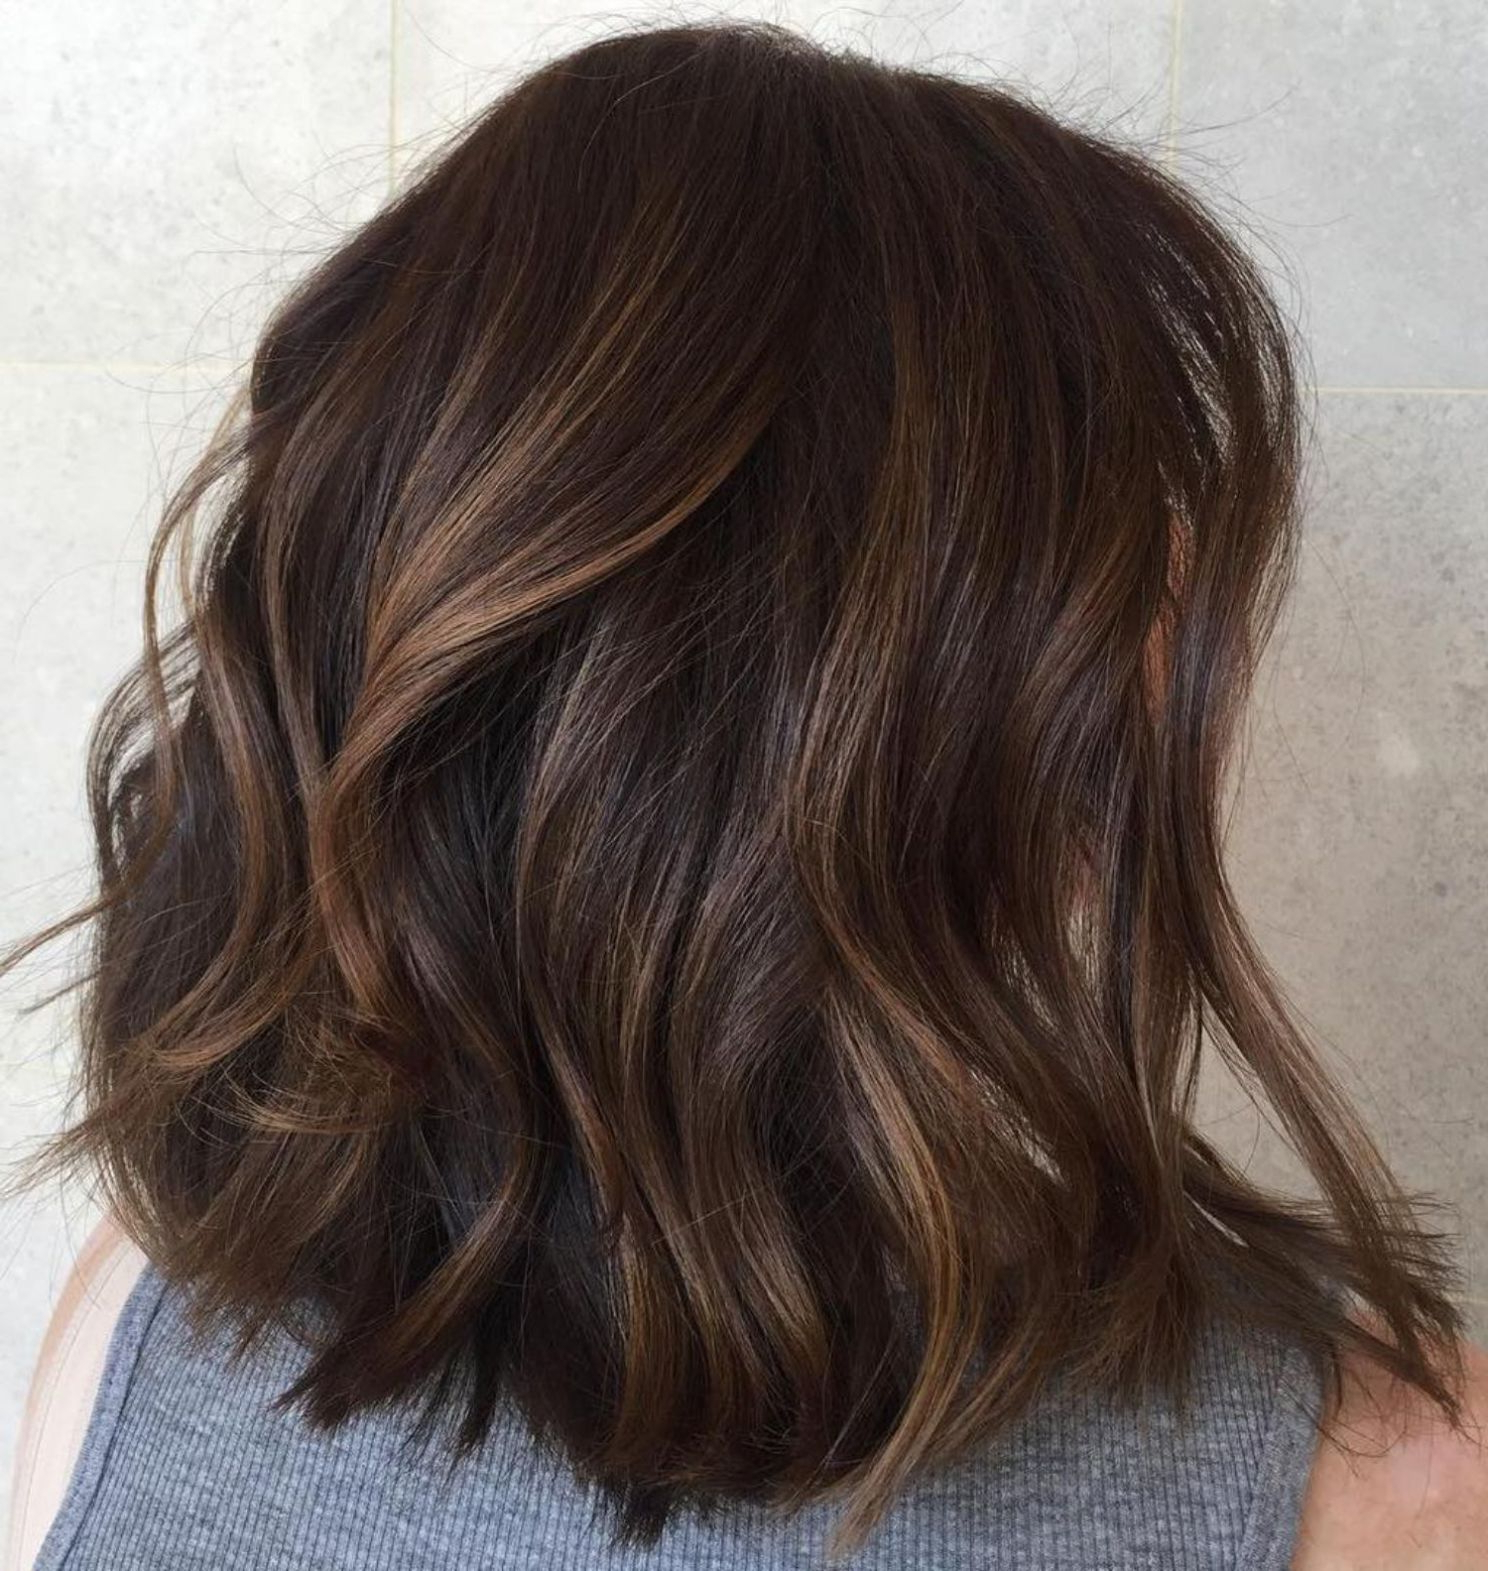 70 Brightest Medium Layered Haircuts To Light You Up Regarding Layered Dimensional Hairstyles (View 4 of 20)